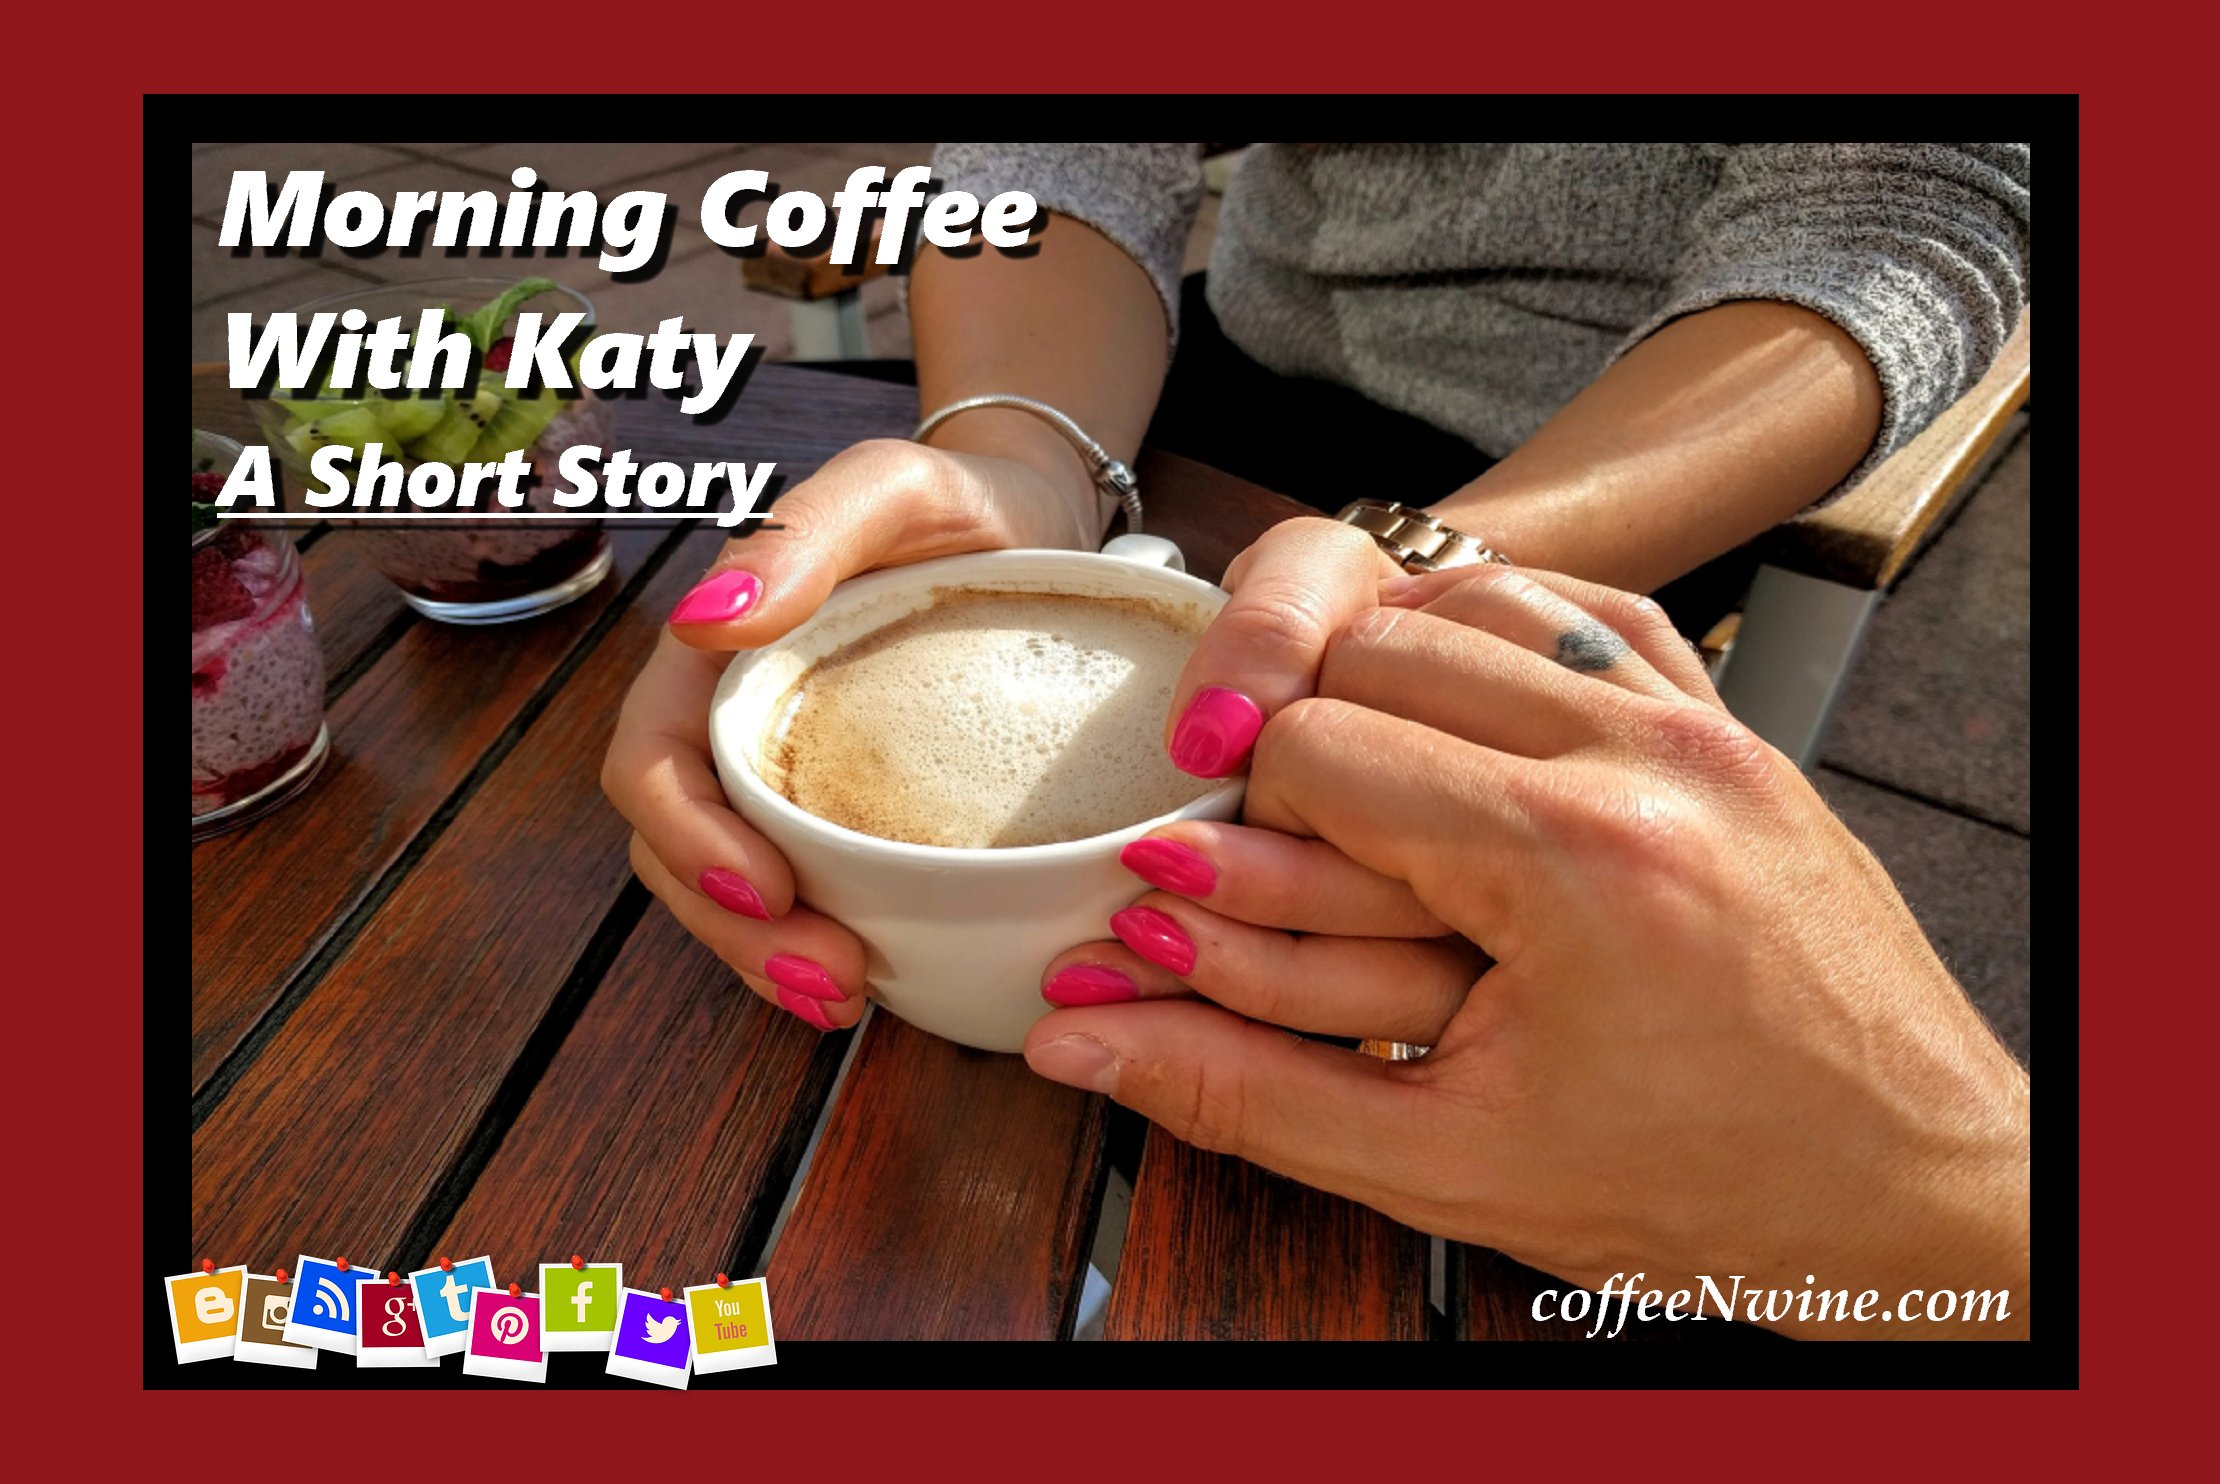 Morning Coffee With Katy – a Short Story